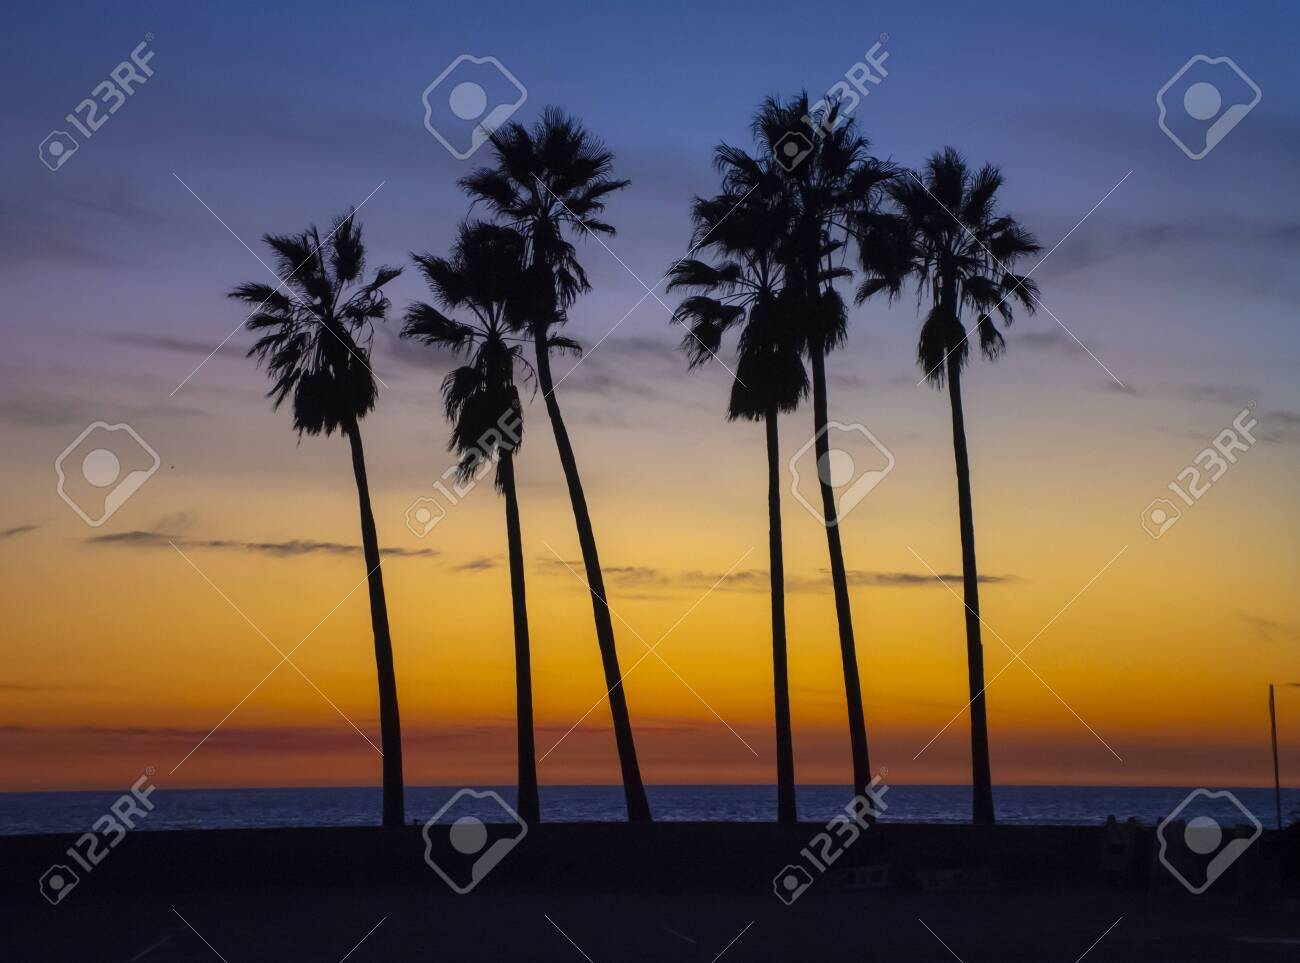 Palm trees against beautiful sunset. - 122248741